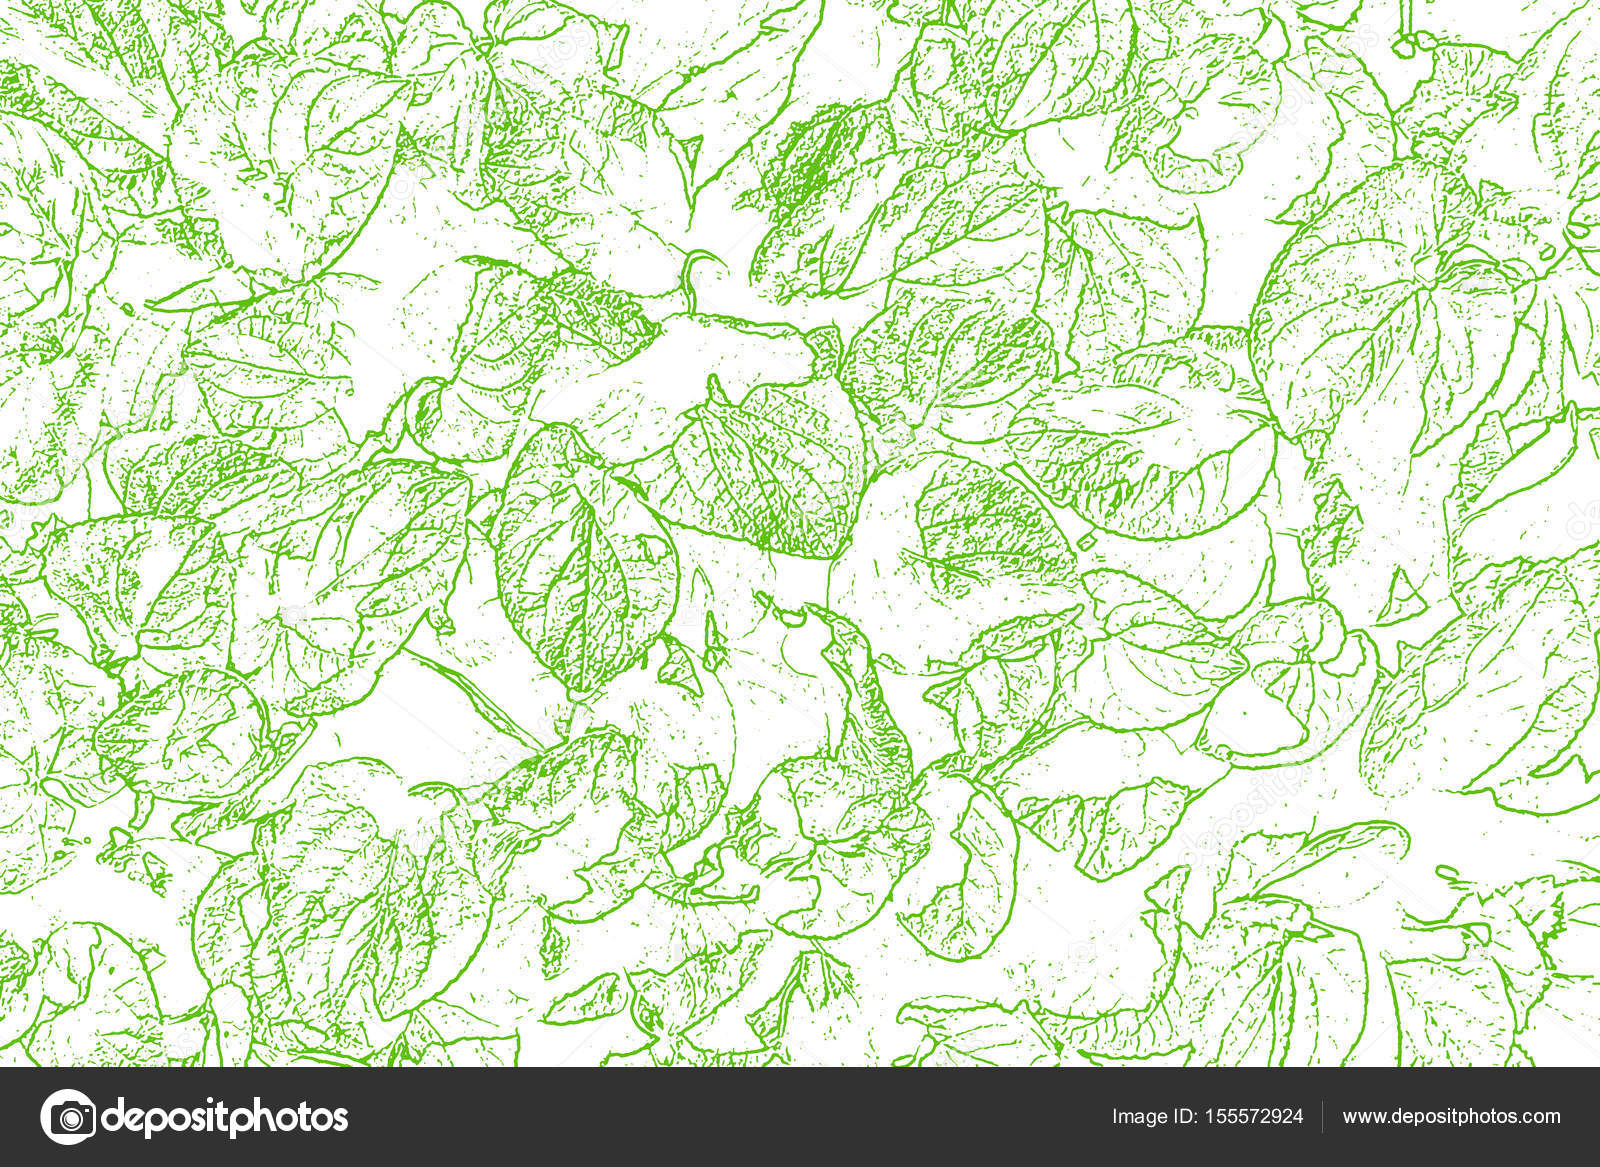 Green Leaves Skeleton Silhouette At White Abstract Texture Backg Stock Photo